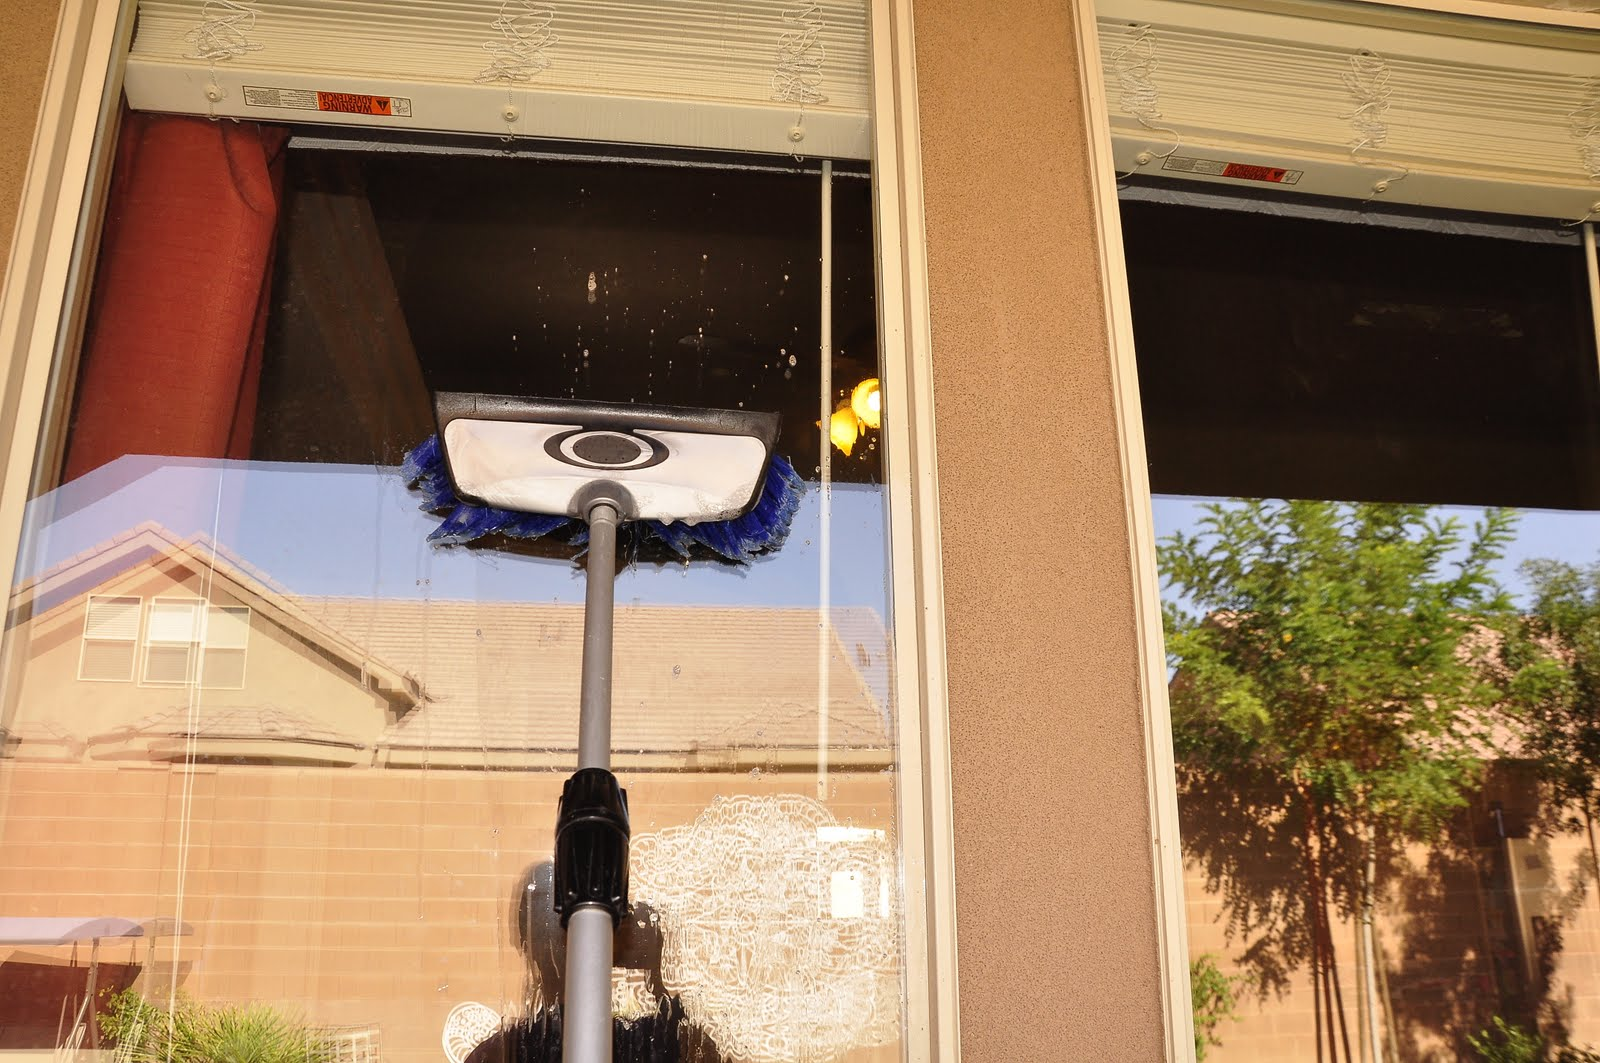 homemade window cleaning solution